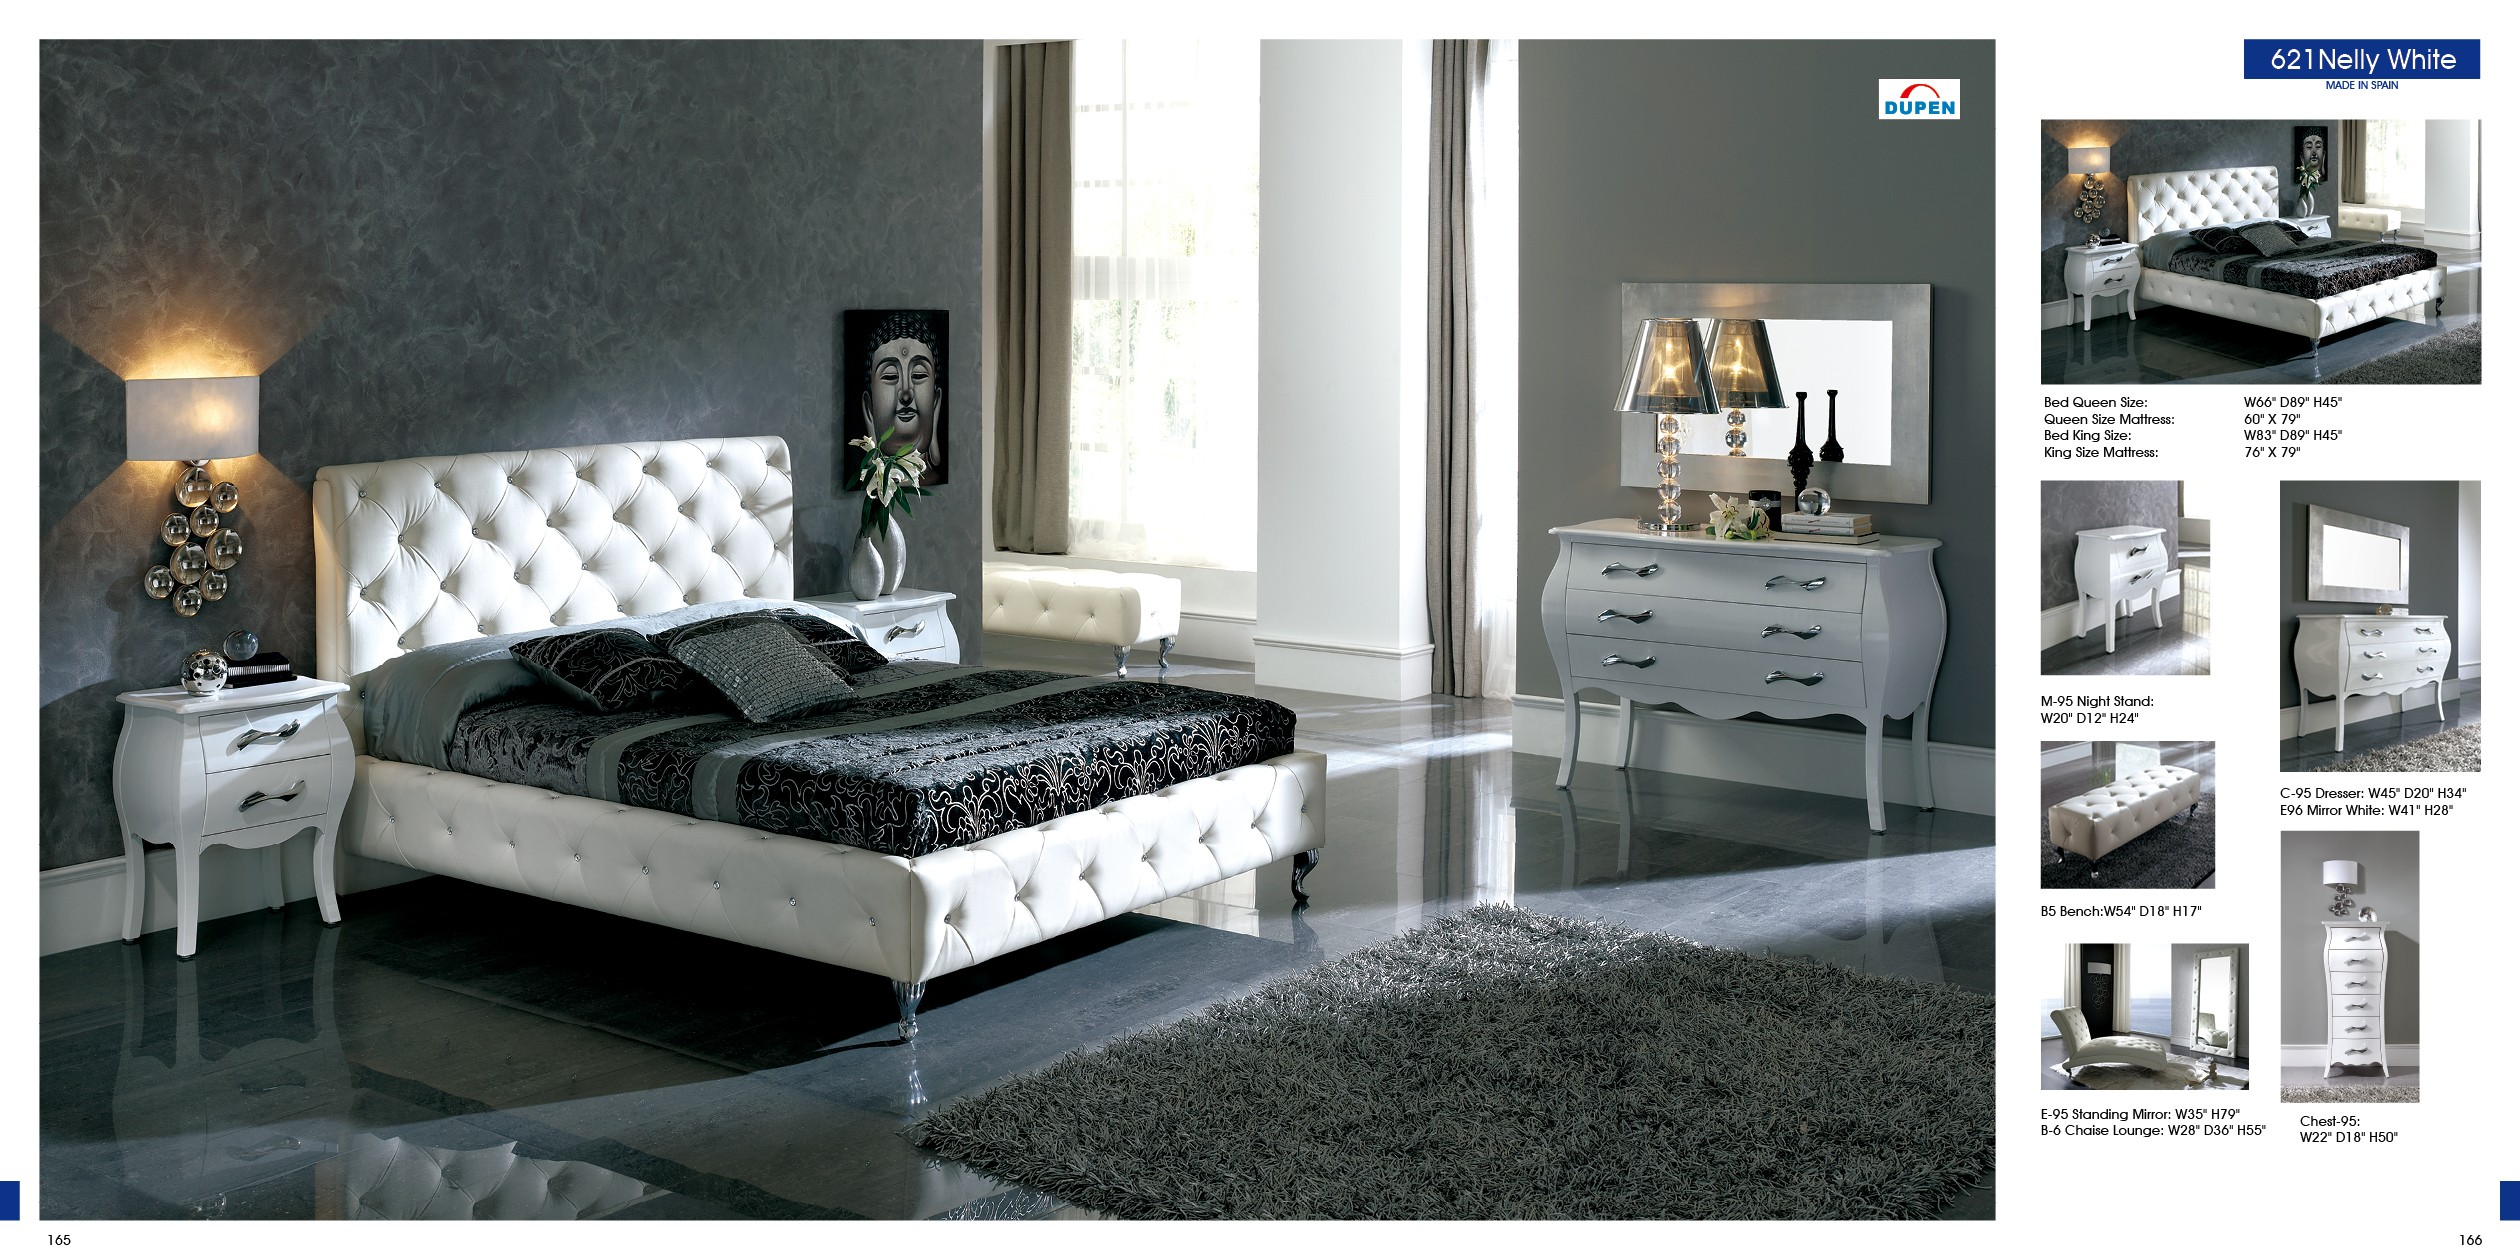 621 Nelly By Dupen White Black Made In Spain Modern